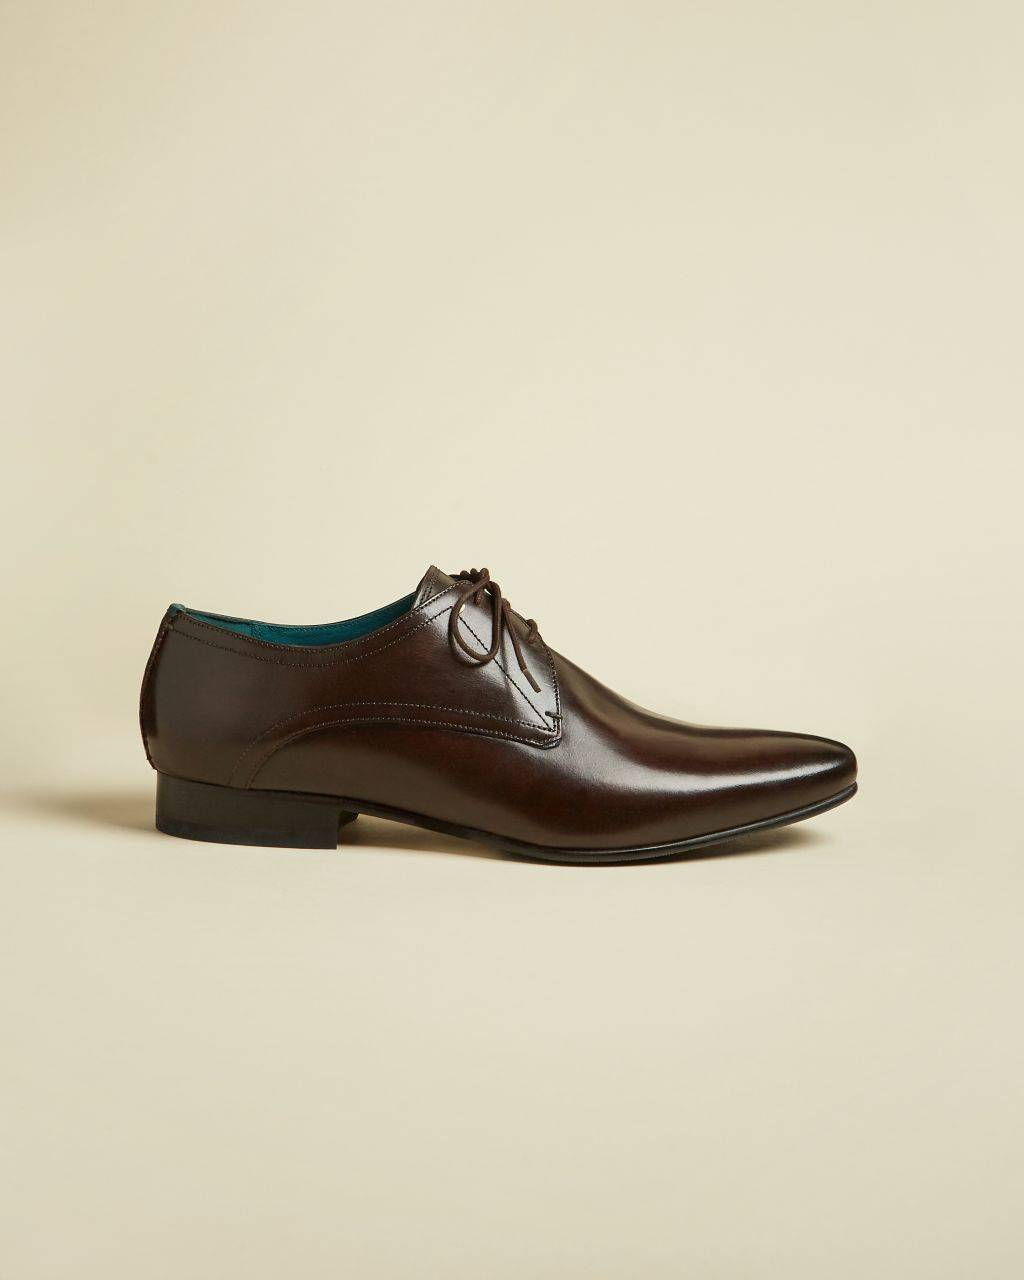 Ted Baker Leather Derby Shoes  - Brown - Size: UK 12 (EU 46)